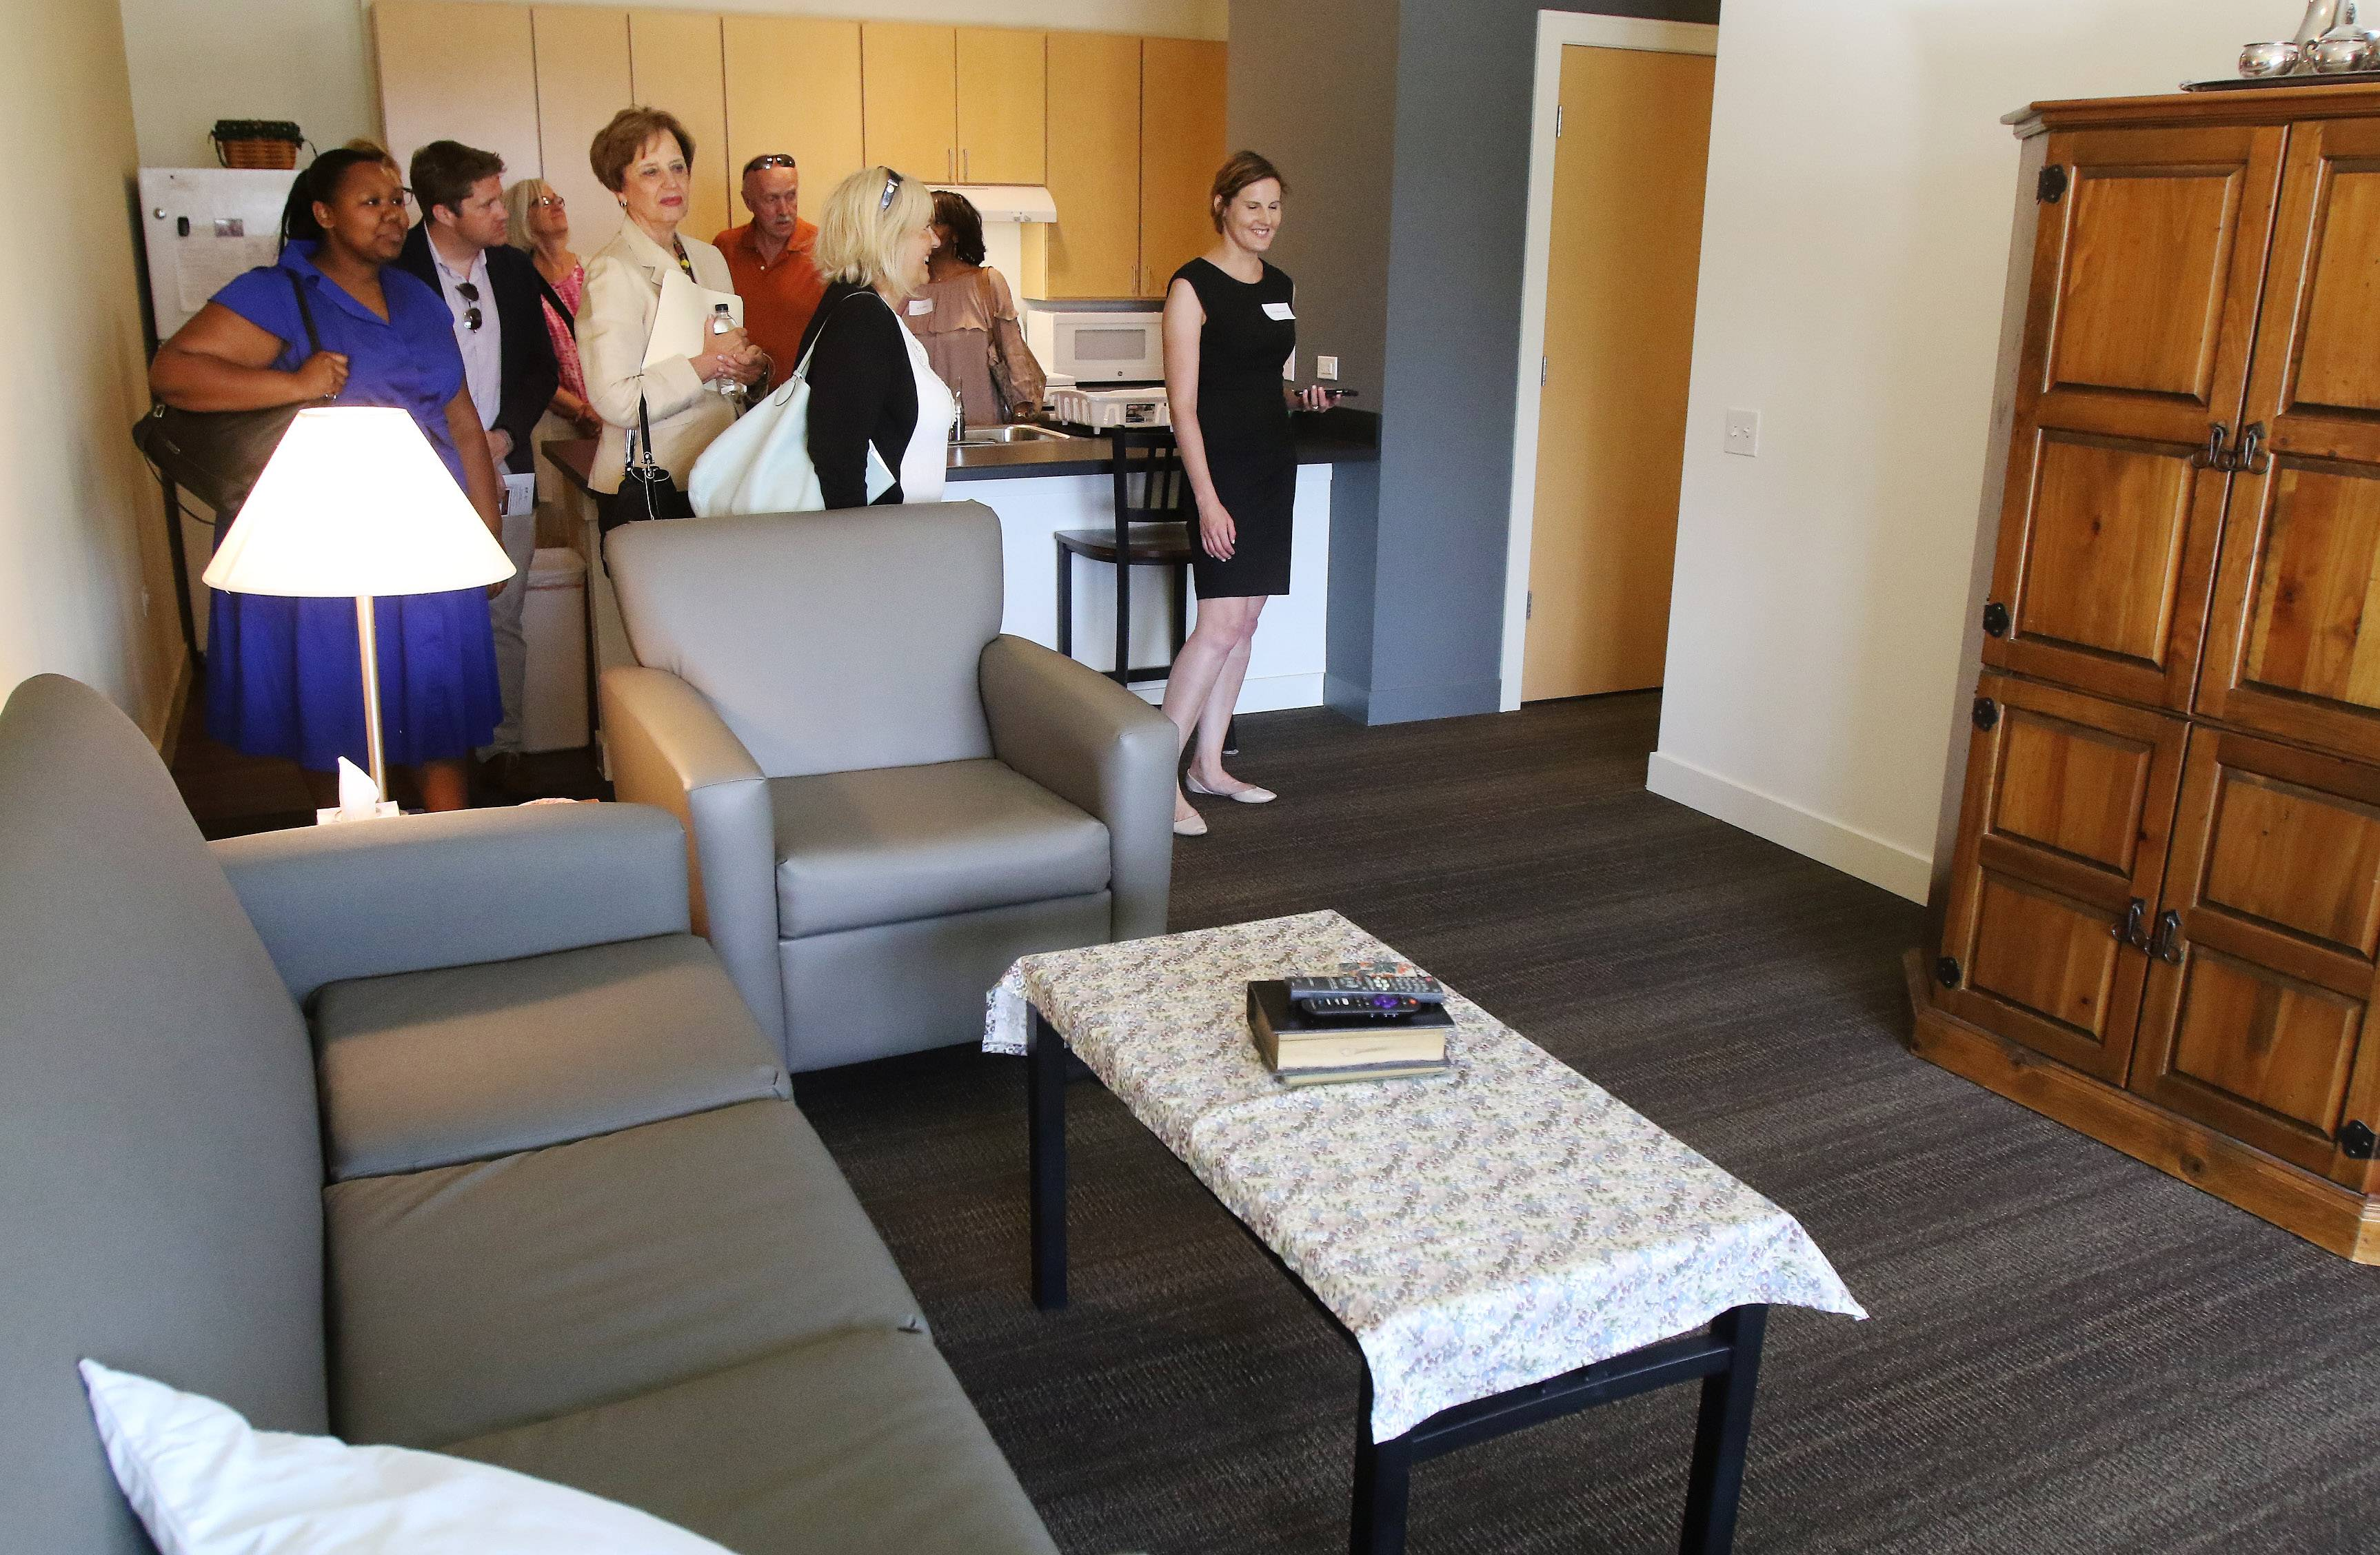 A group tours an apartment during Monday's grand opening of PhilHaven in Wheeling. The 50-unit housing development provides apartments for people with disabilities and those previously homeless.